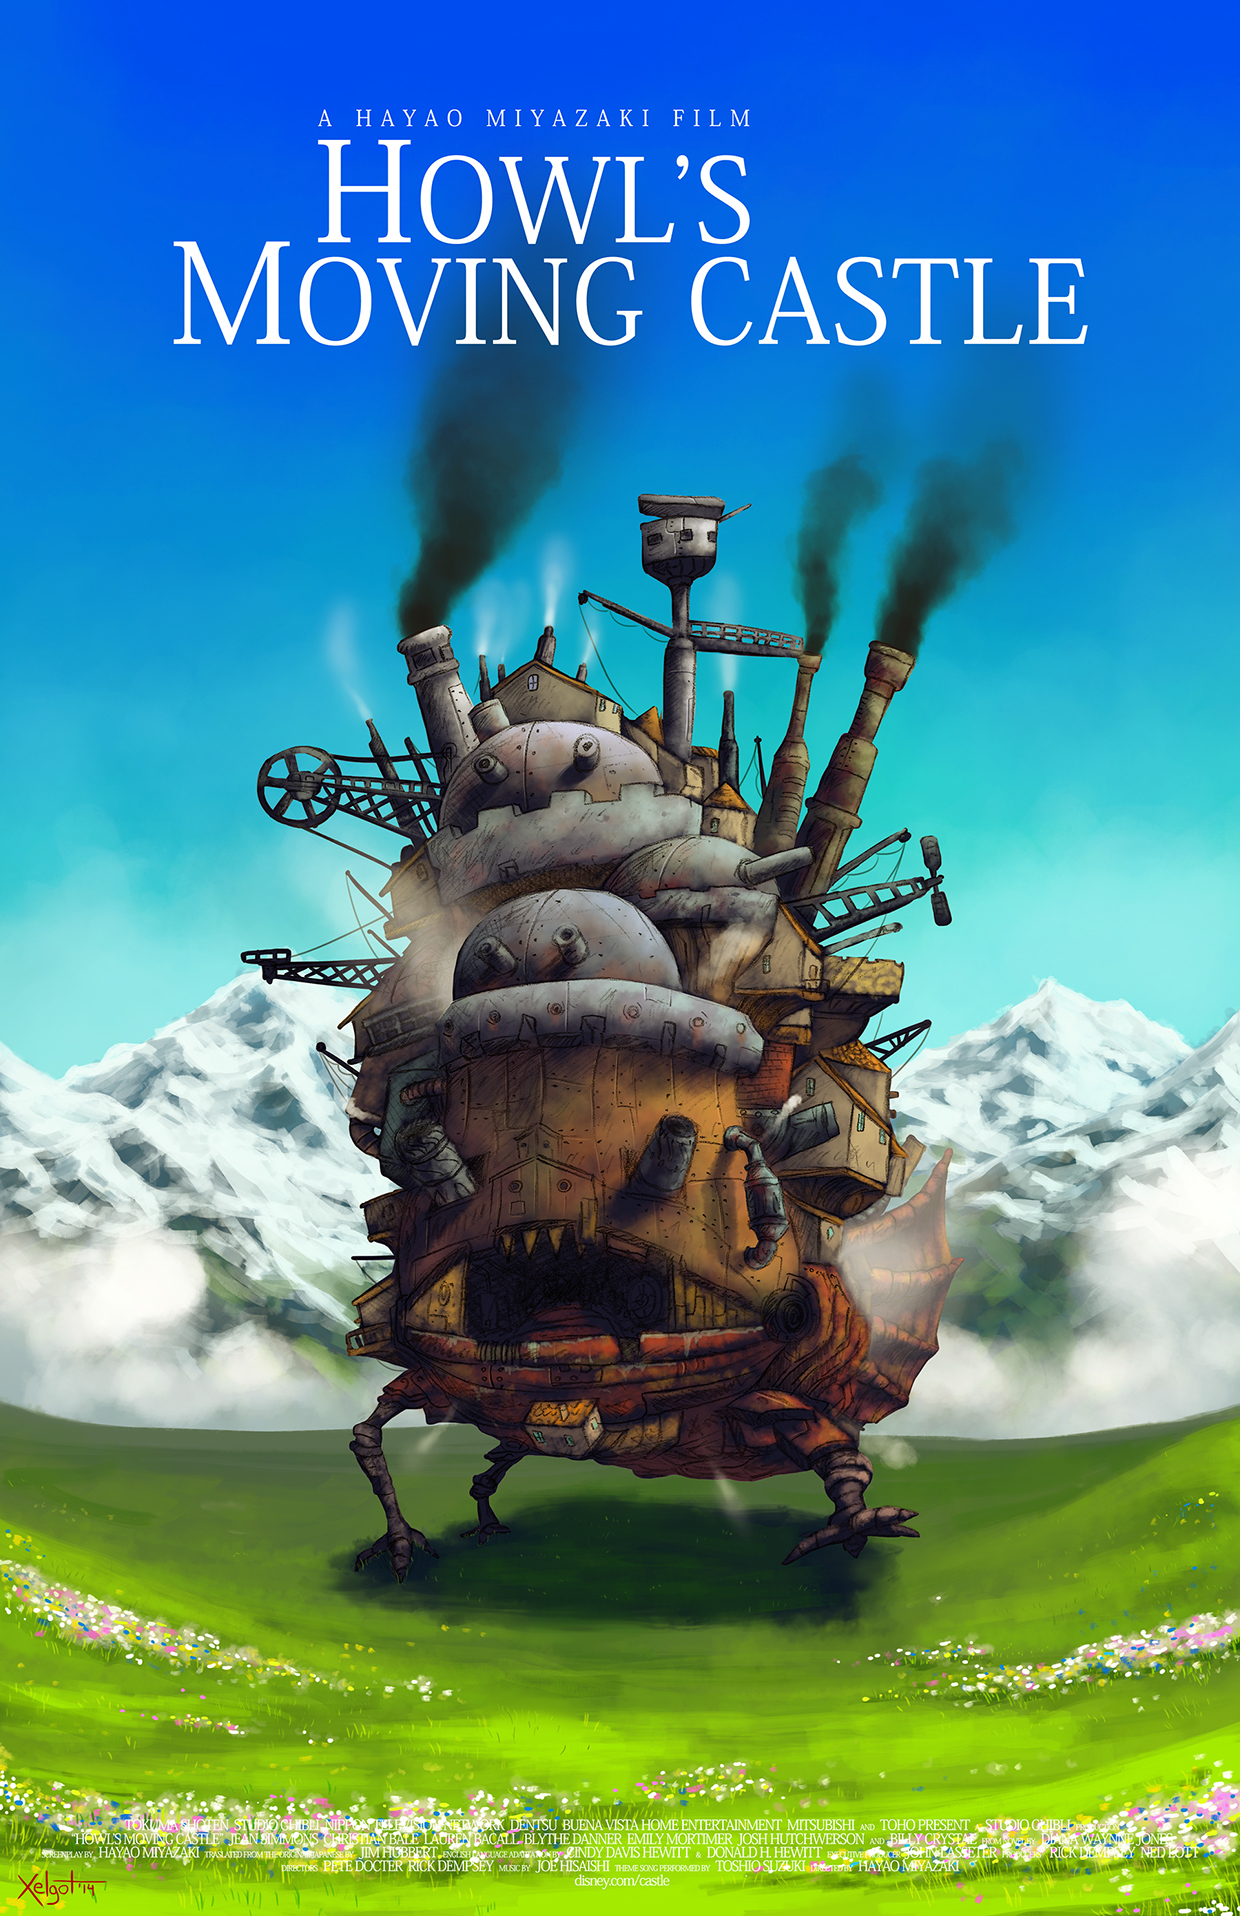 Showtime for Howl\'s Moving Castle playing Jun 17th, 2018 at 2:50 PM ...